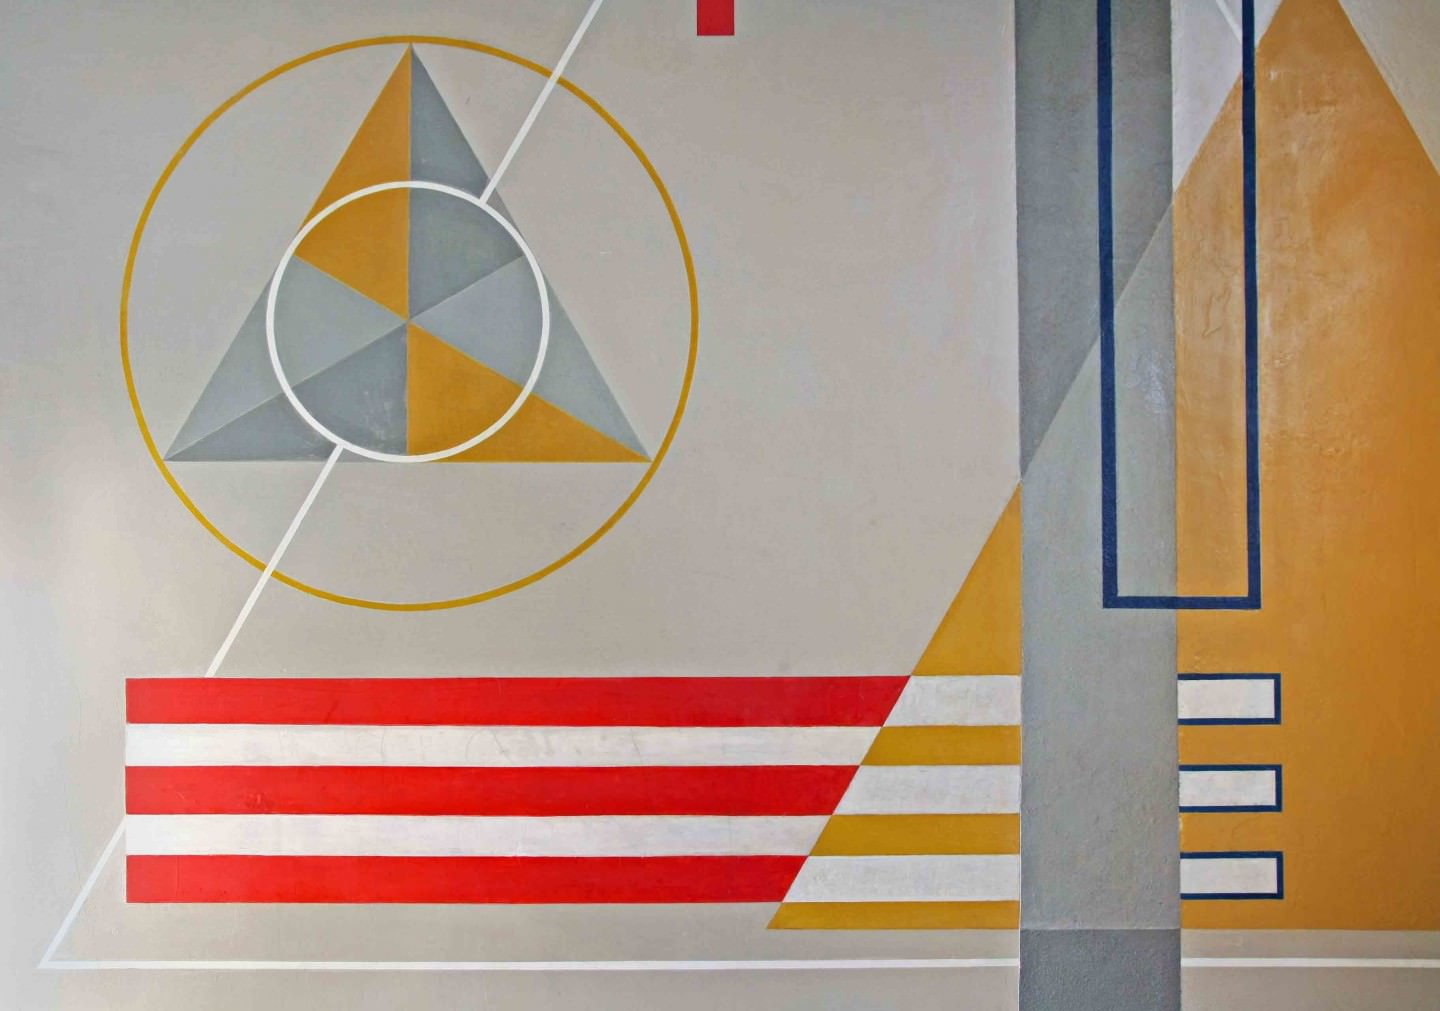 Graphical Designs inspired by Bauhaus